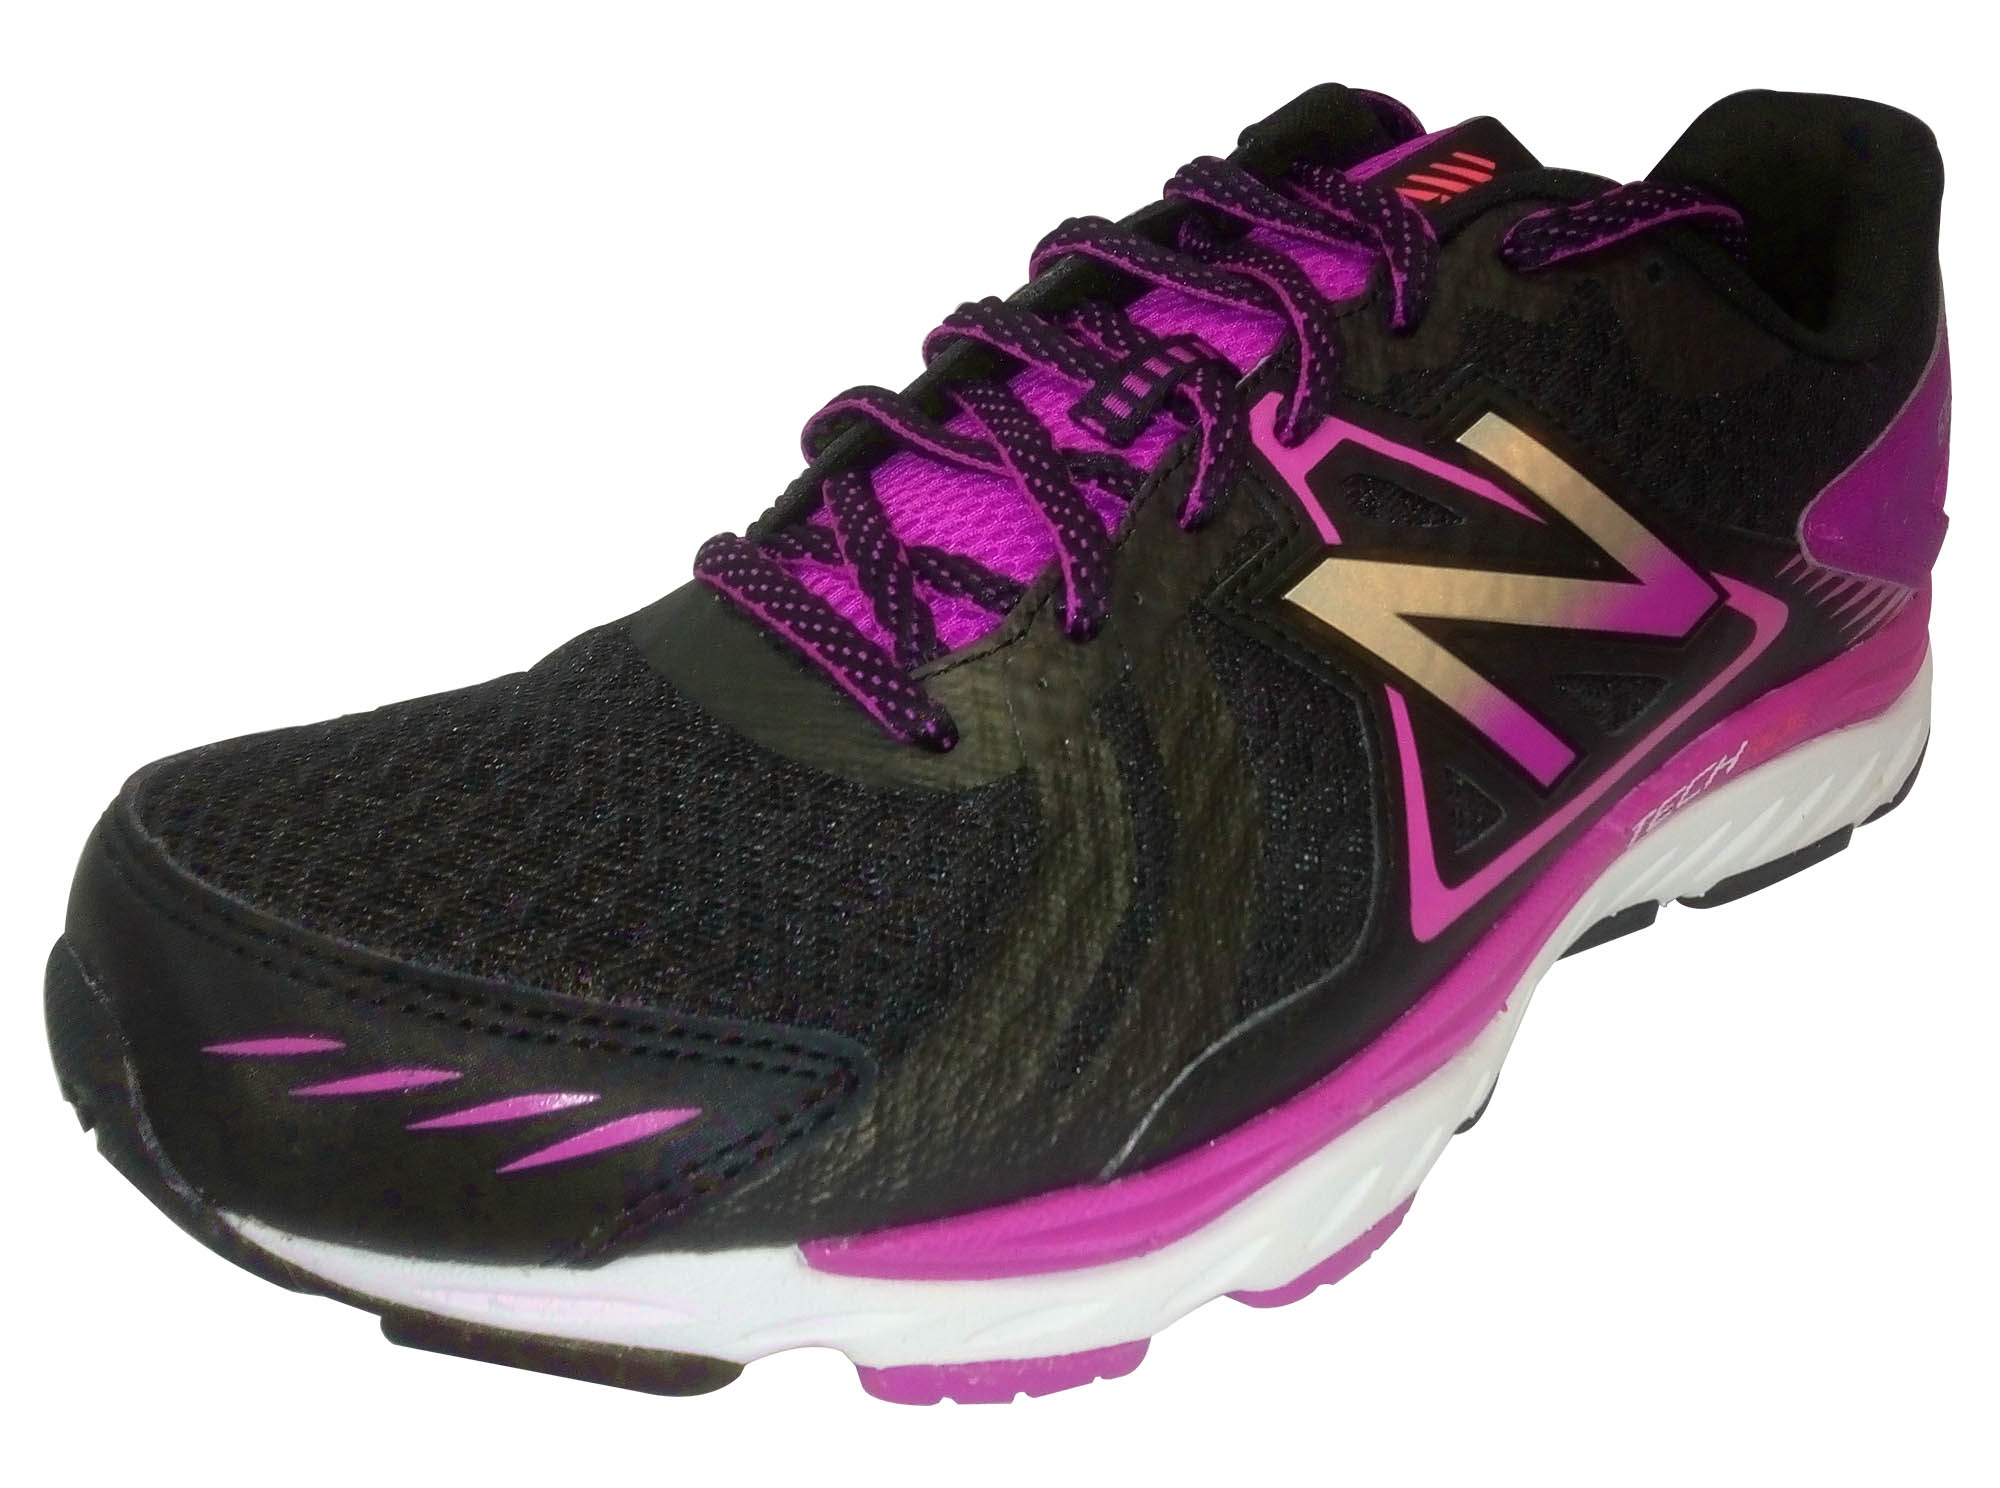 New Balance 670 Stability Trainer Ladies Running Shoes  8 UK